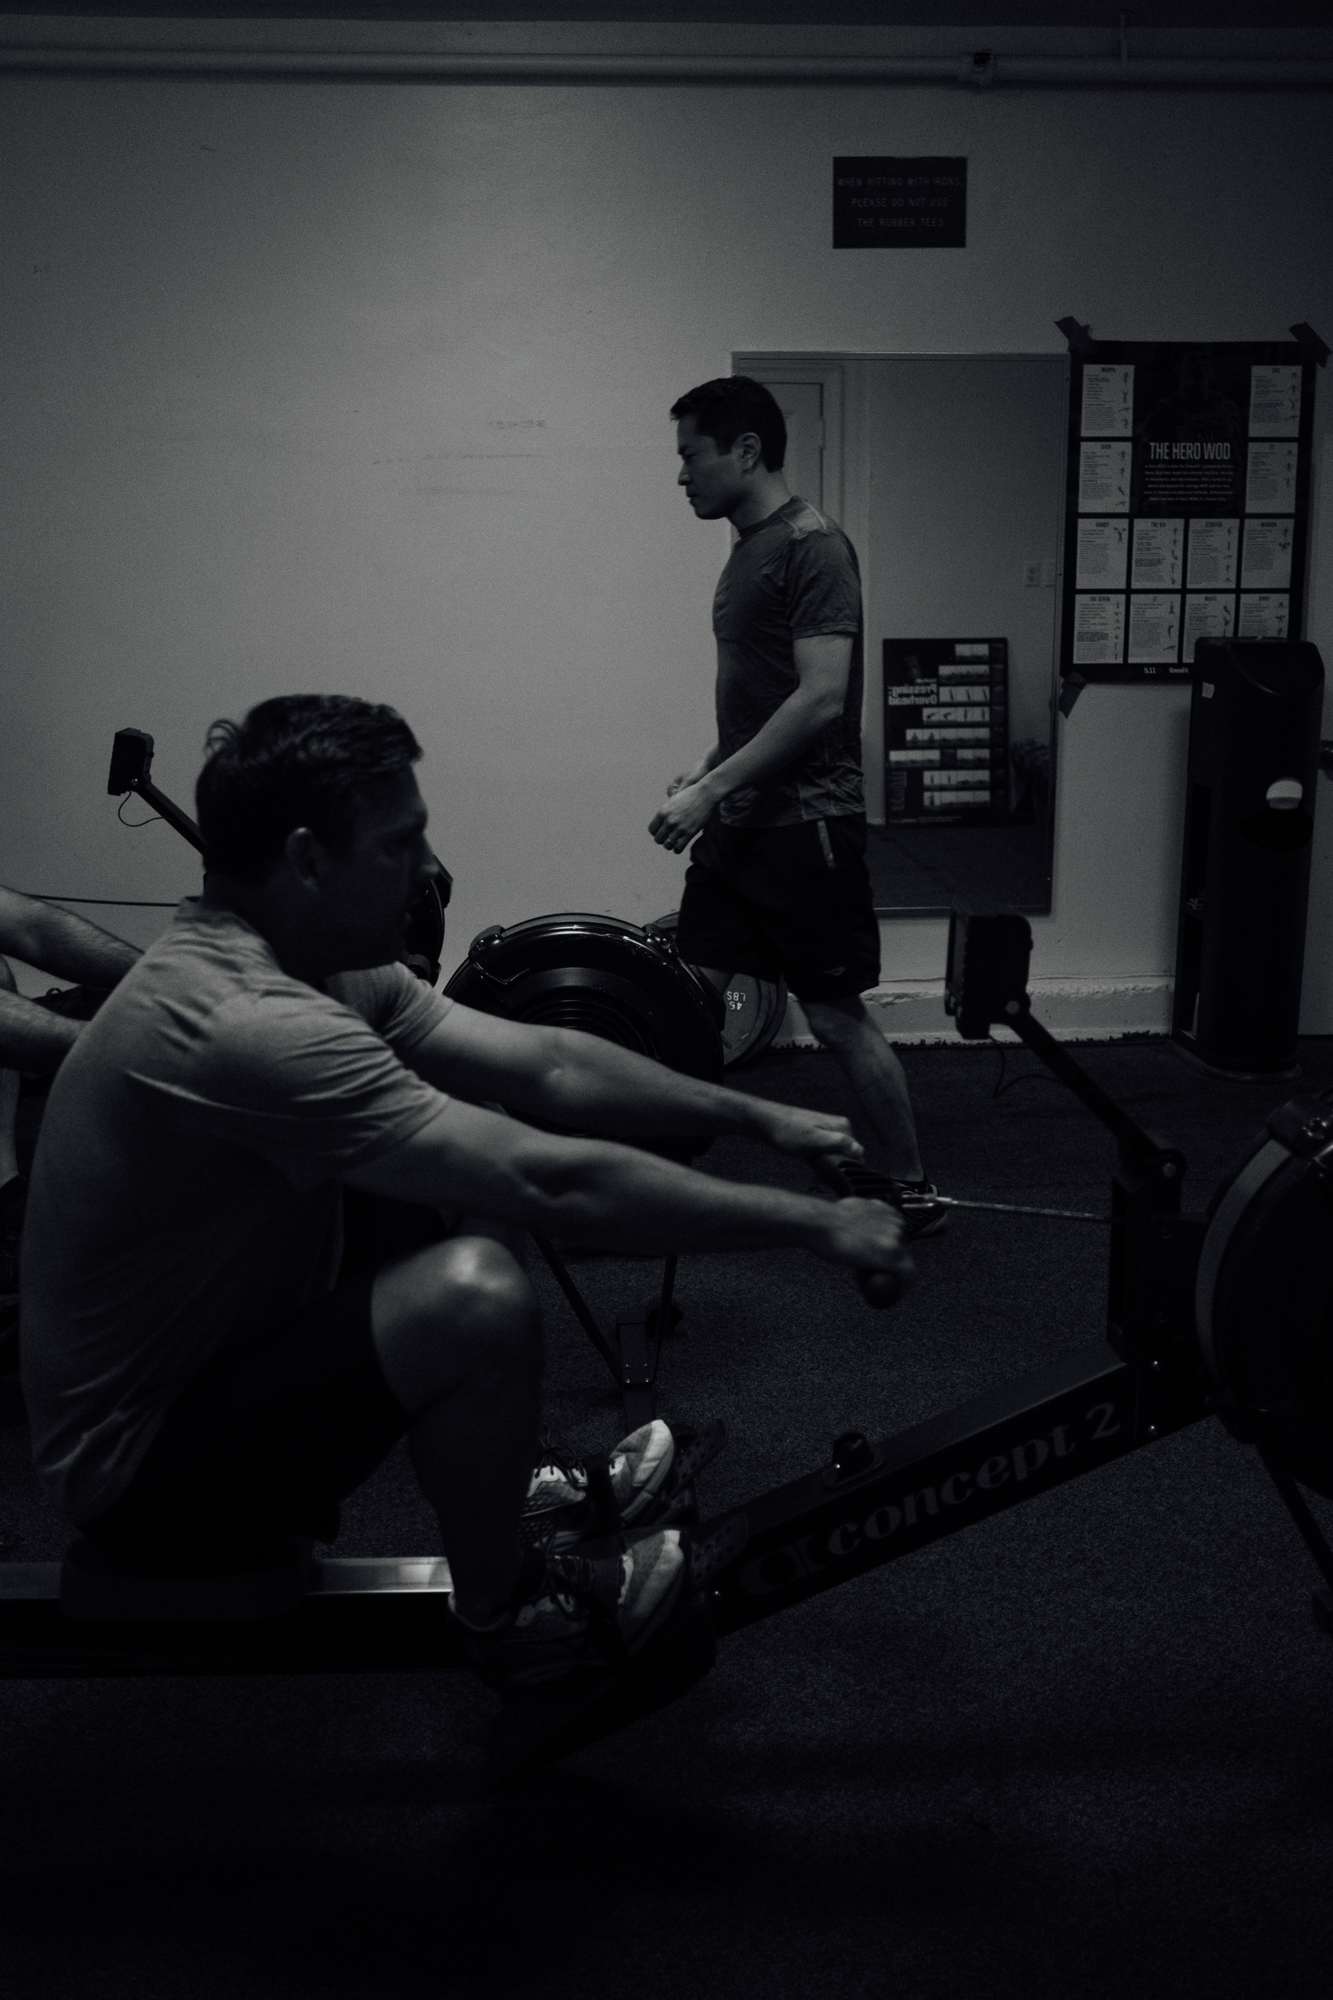 union league crossfit (4 of 16).jpg